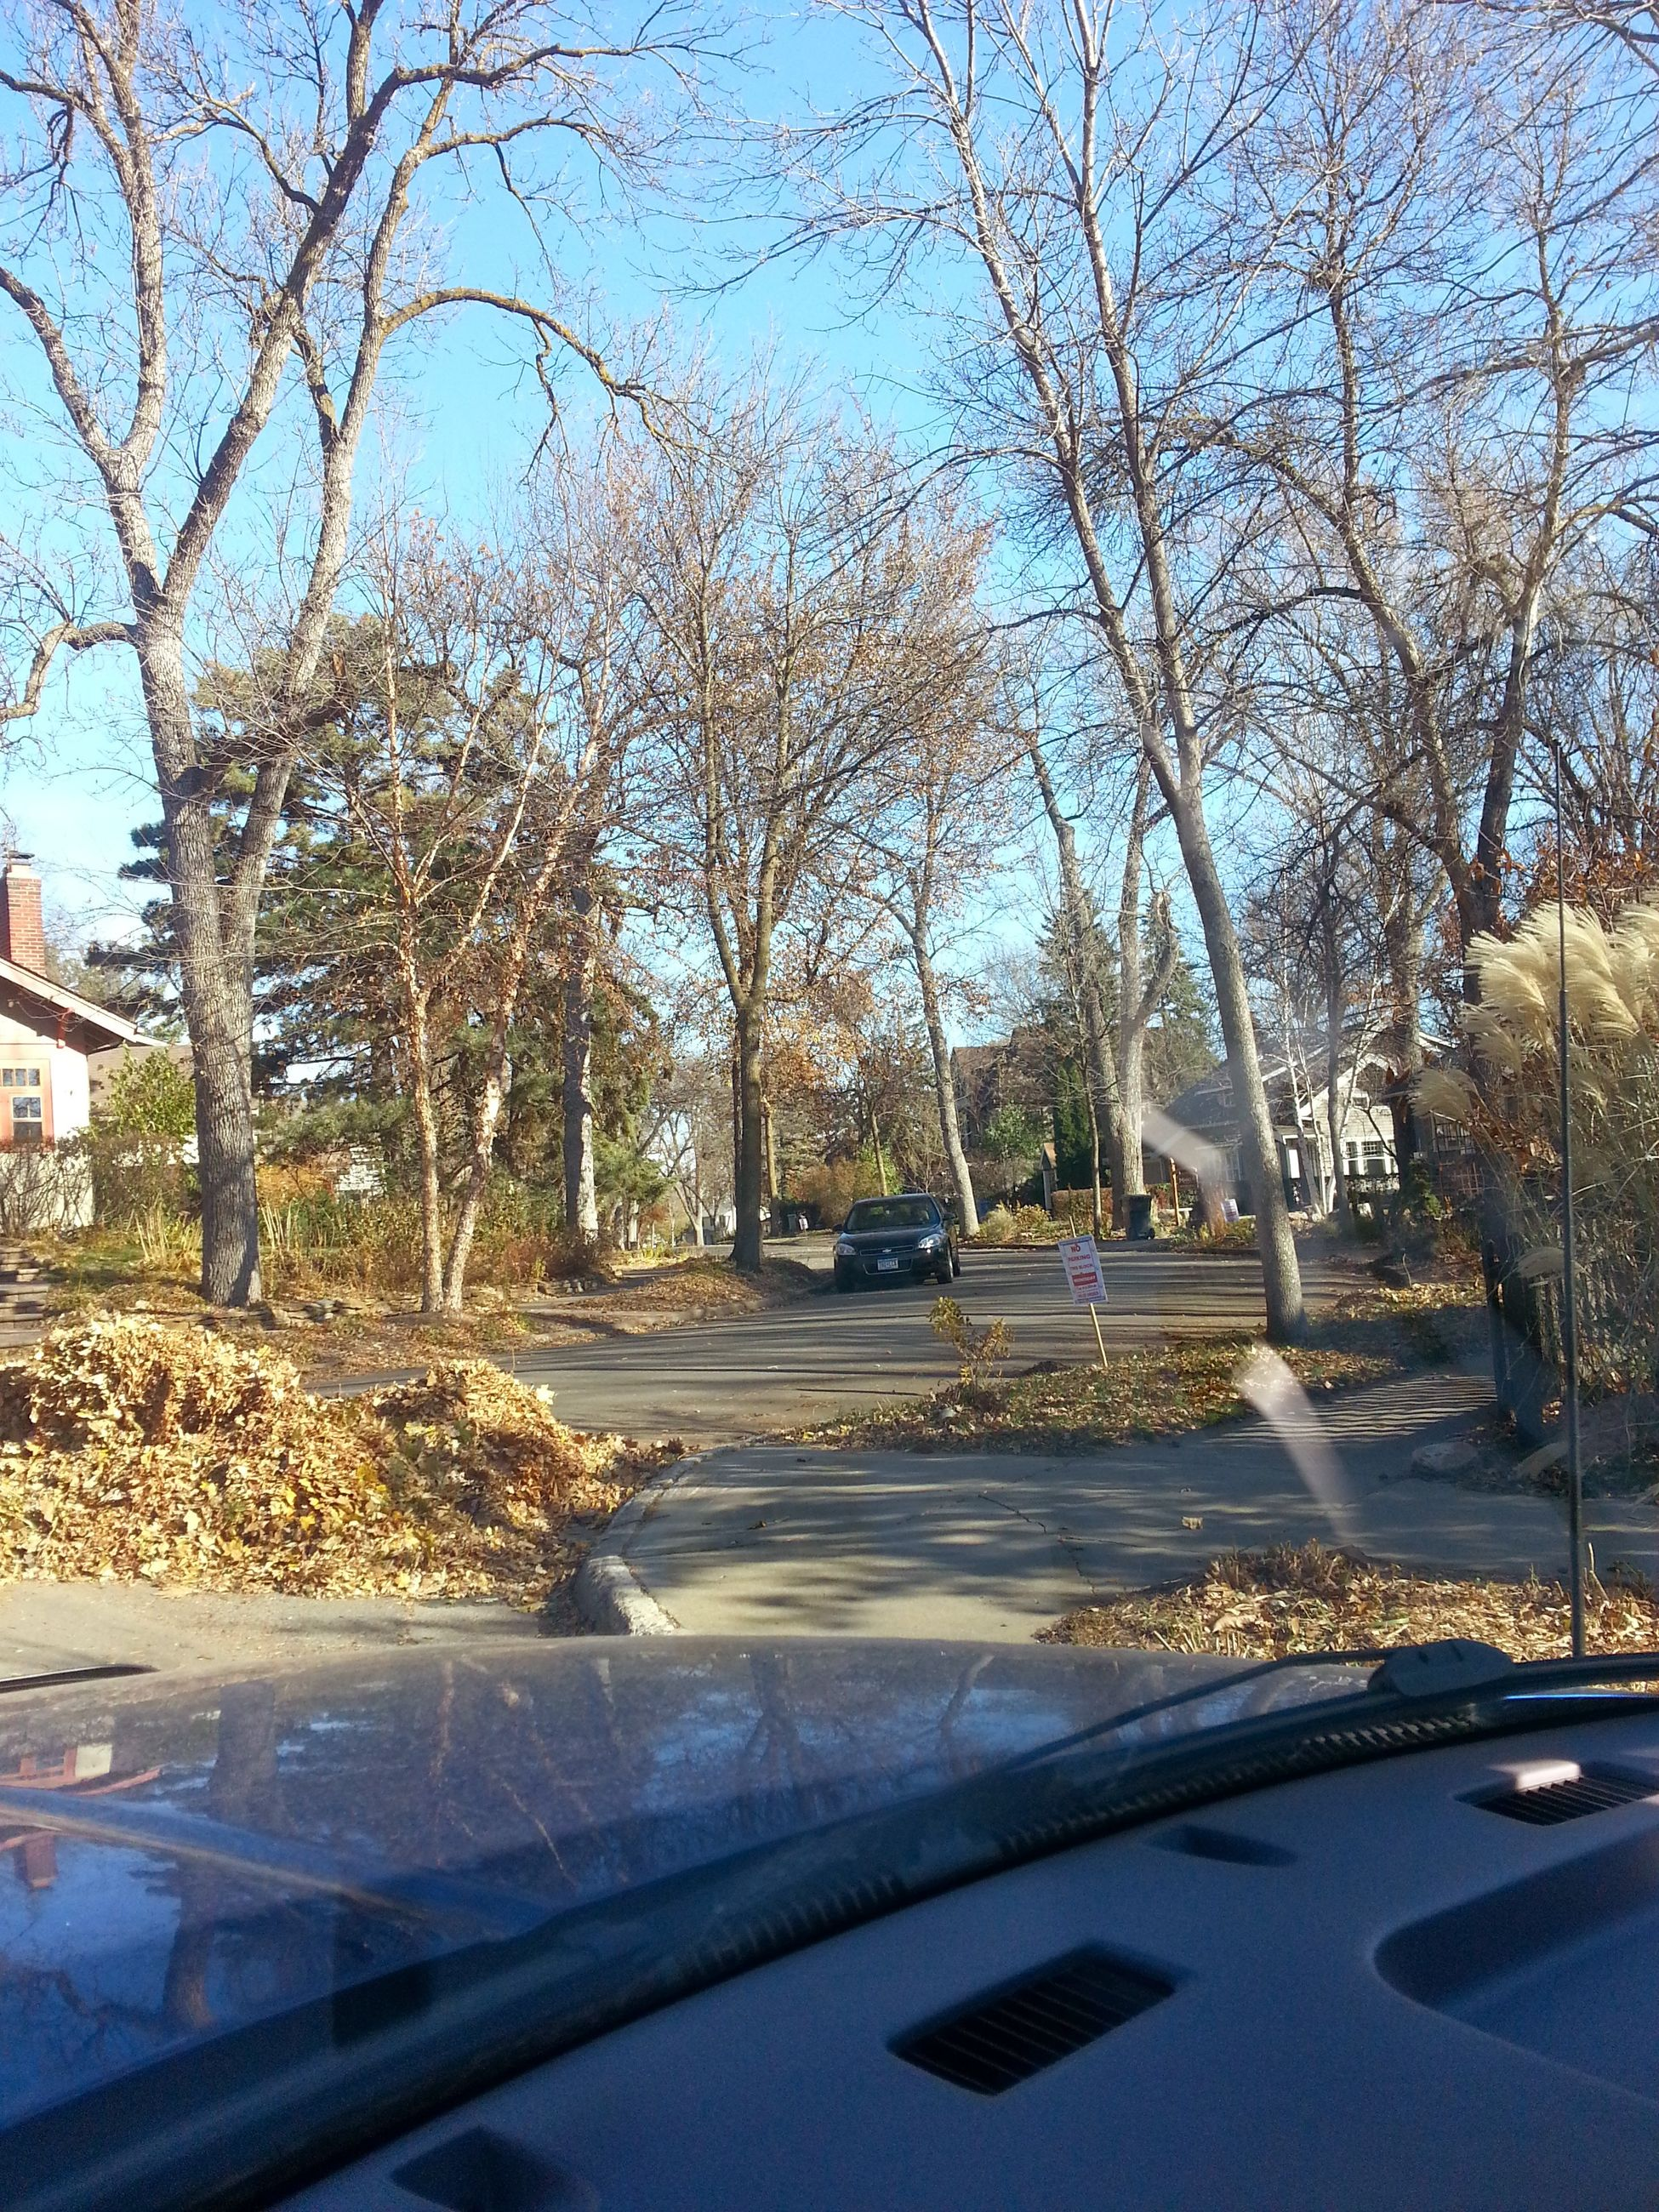 tree, transportation, road, branch, clear sky, car, built structure, sunlight, street, building exterior, bare tree, blue, architecture, growth, day, shadow, nature, sky, city, outdoors